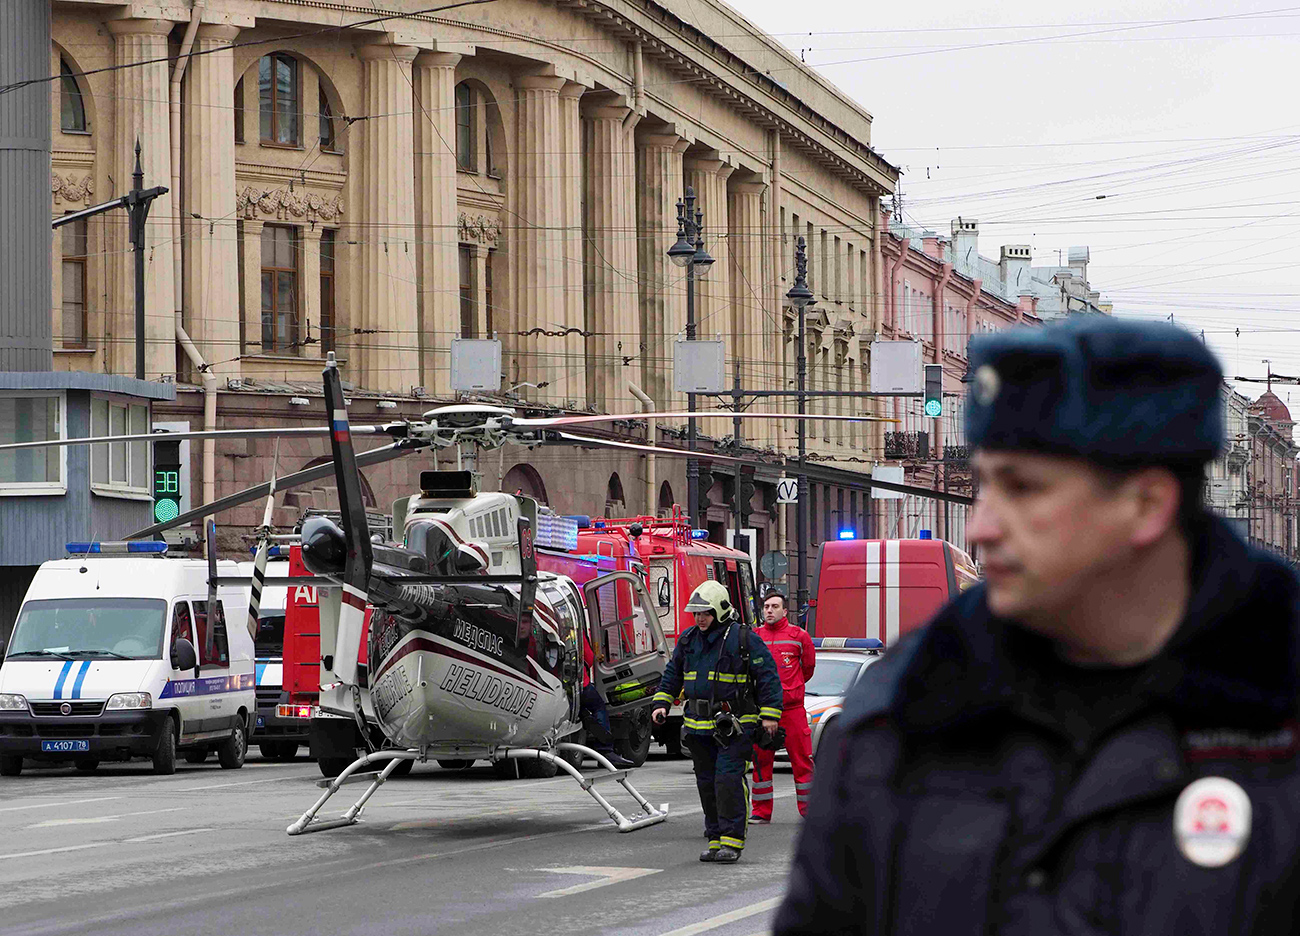 Members of the Emergency services stand next to a helicopter outside Tekhnologicheskiy Institut metro station in St. Petersburg, April 3, 2017